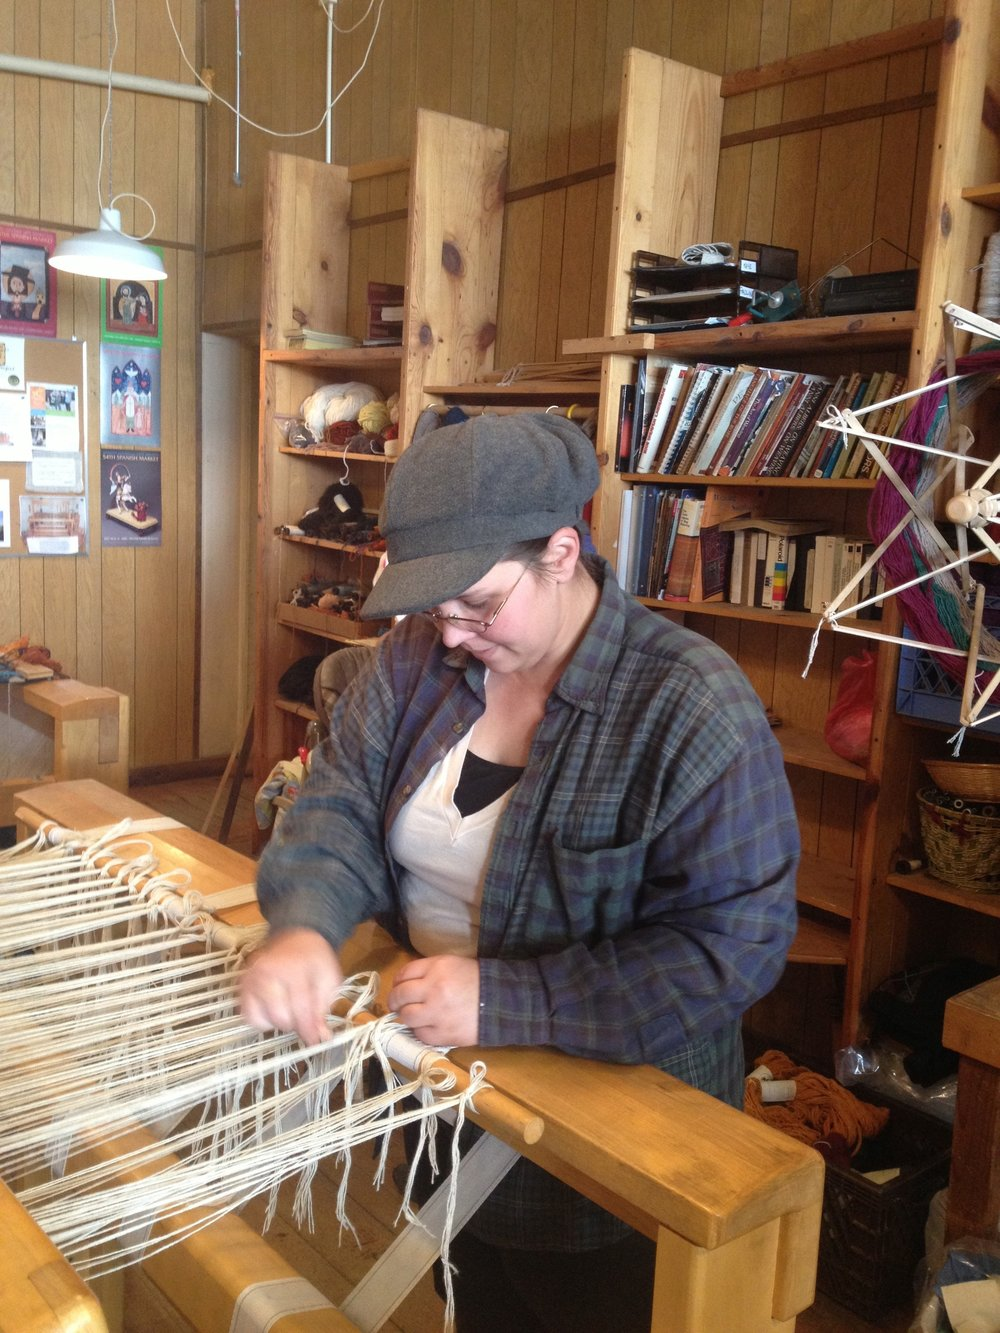 Tying the warp onto the front of the loom